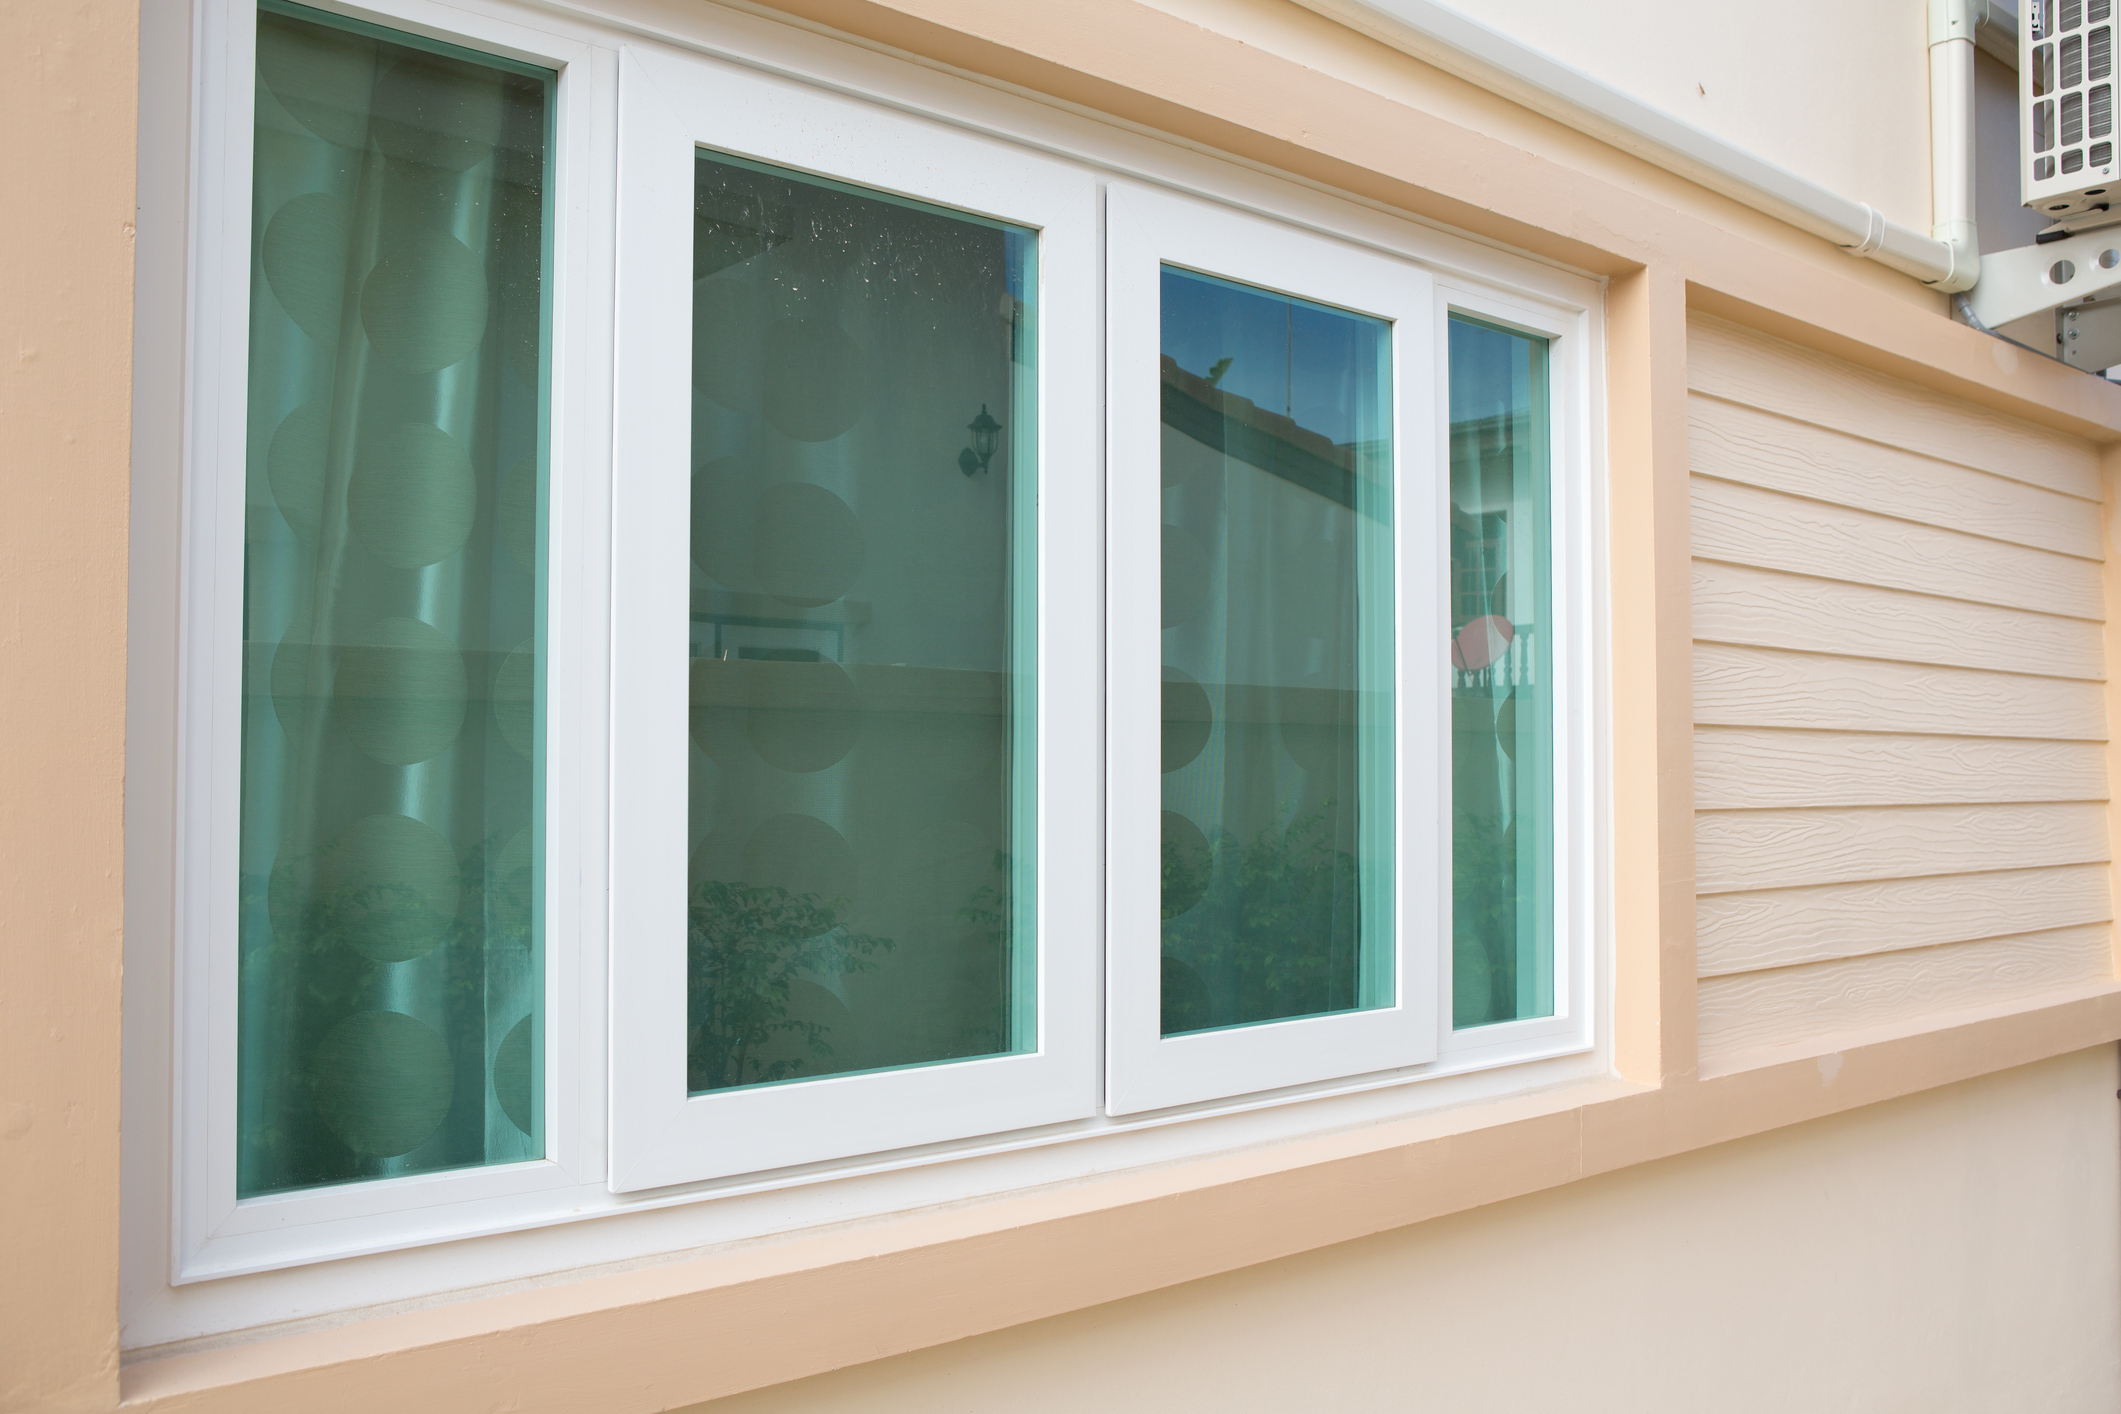 Replacement Windows Norwalk Ct Durable Windows For Your